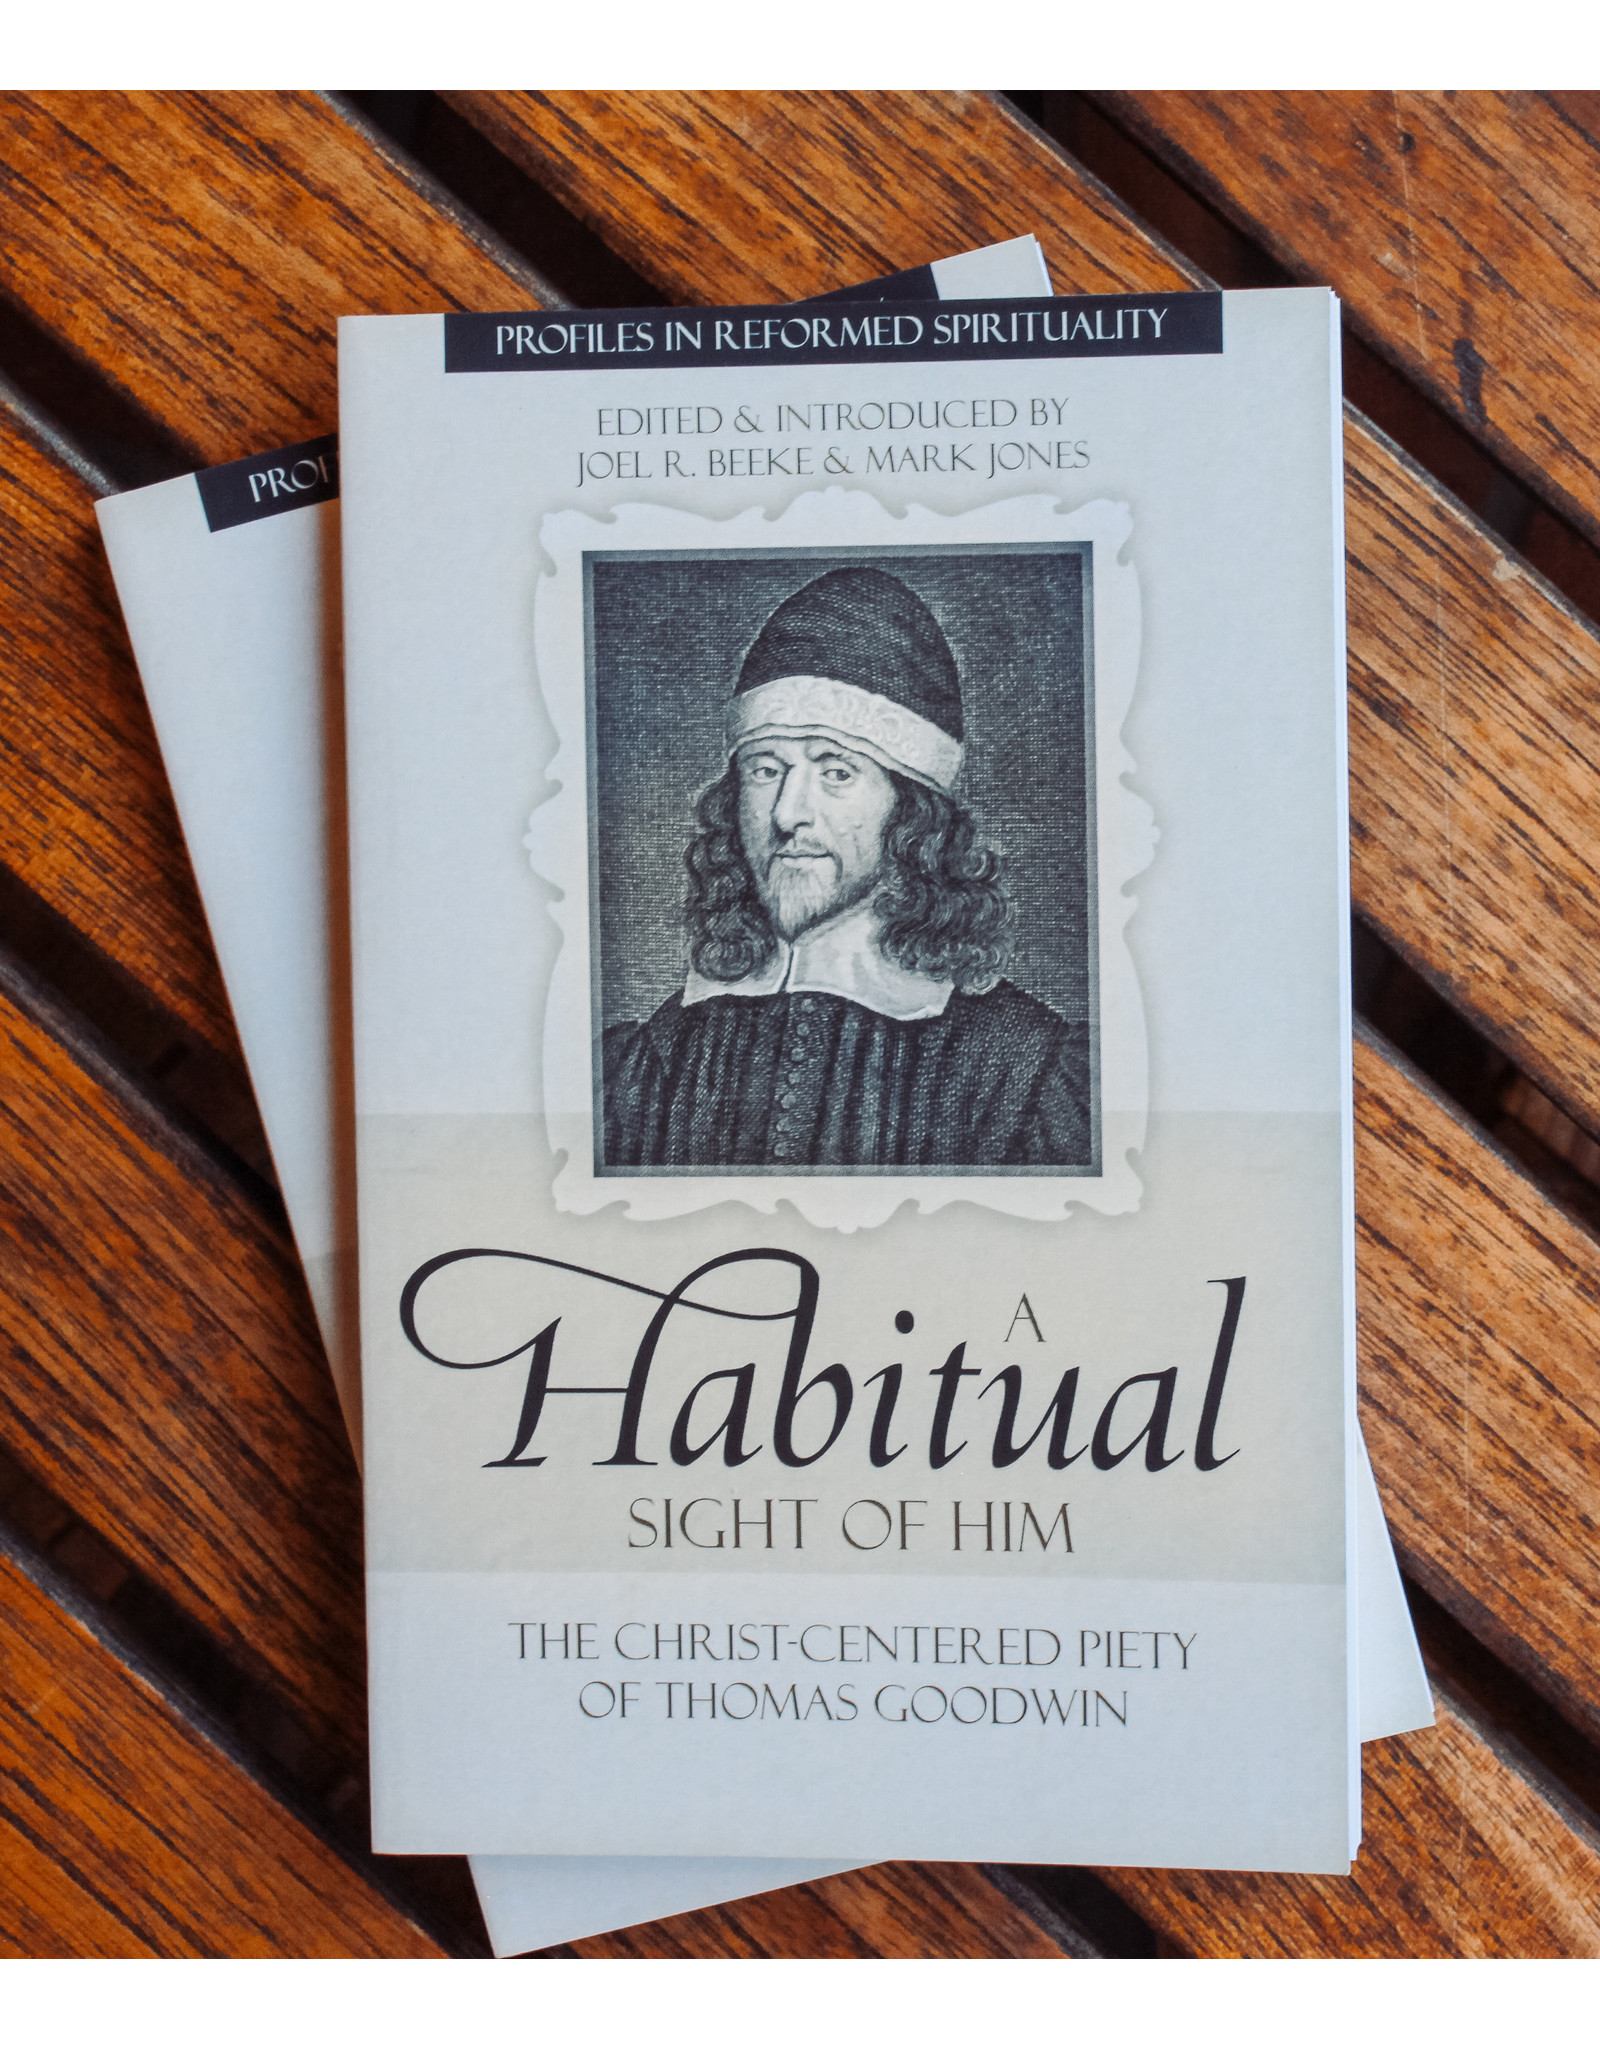 Reformation Heritage Books (RHB) A Habitual Sight of Him: The Christ-Centered Piety of Thomas Goodwin